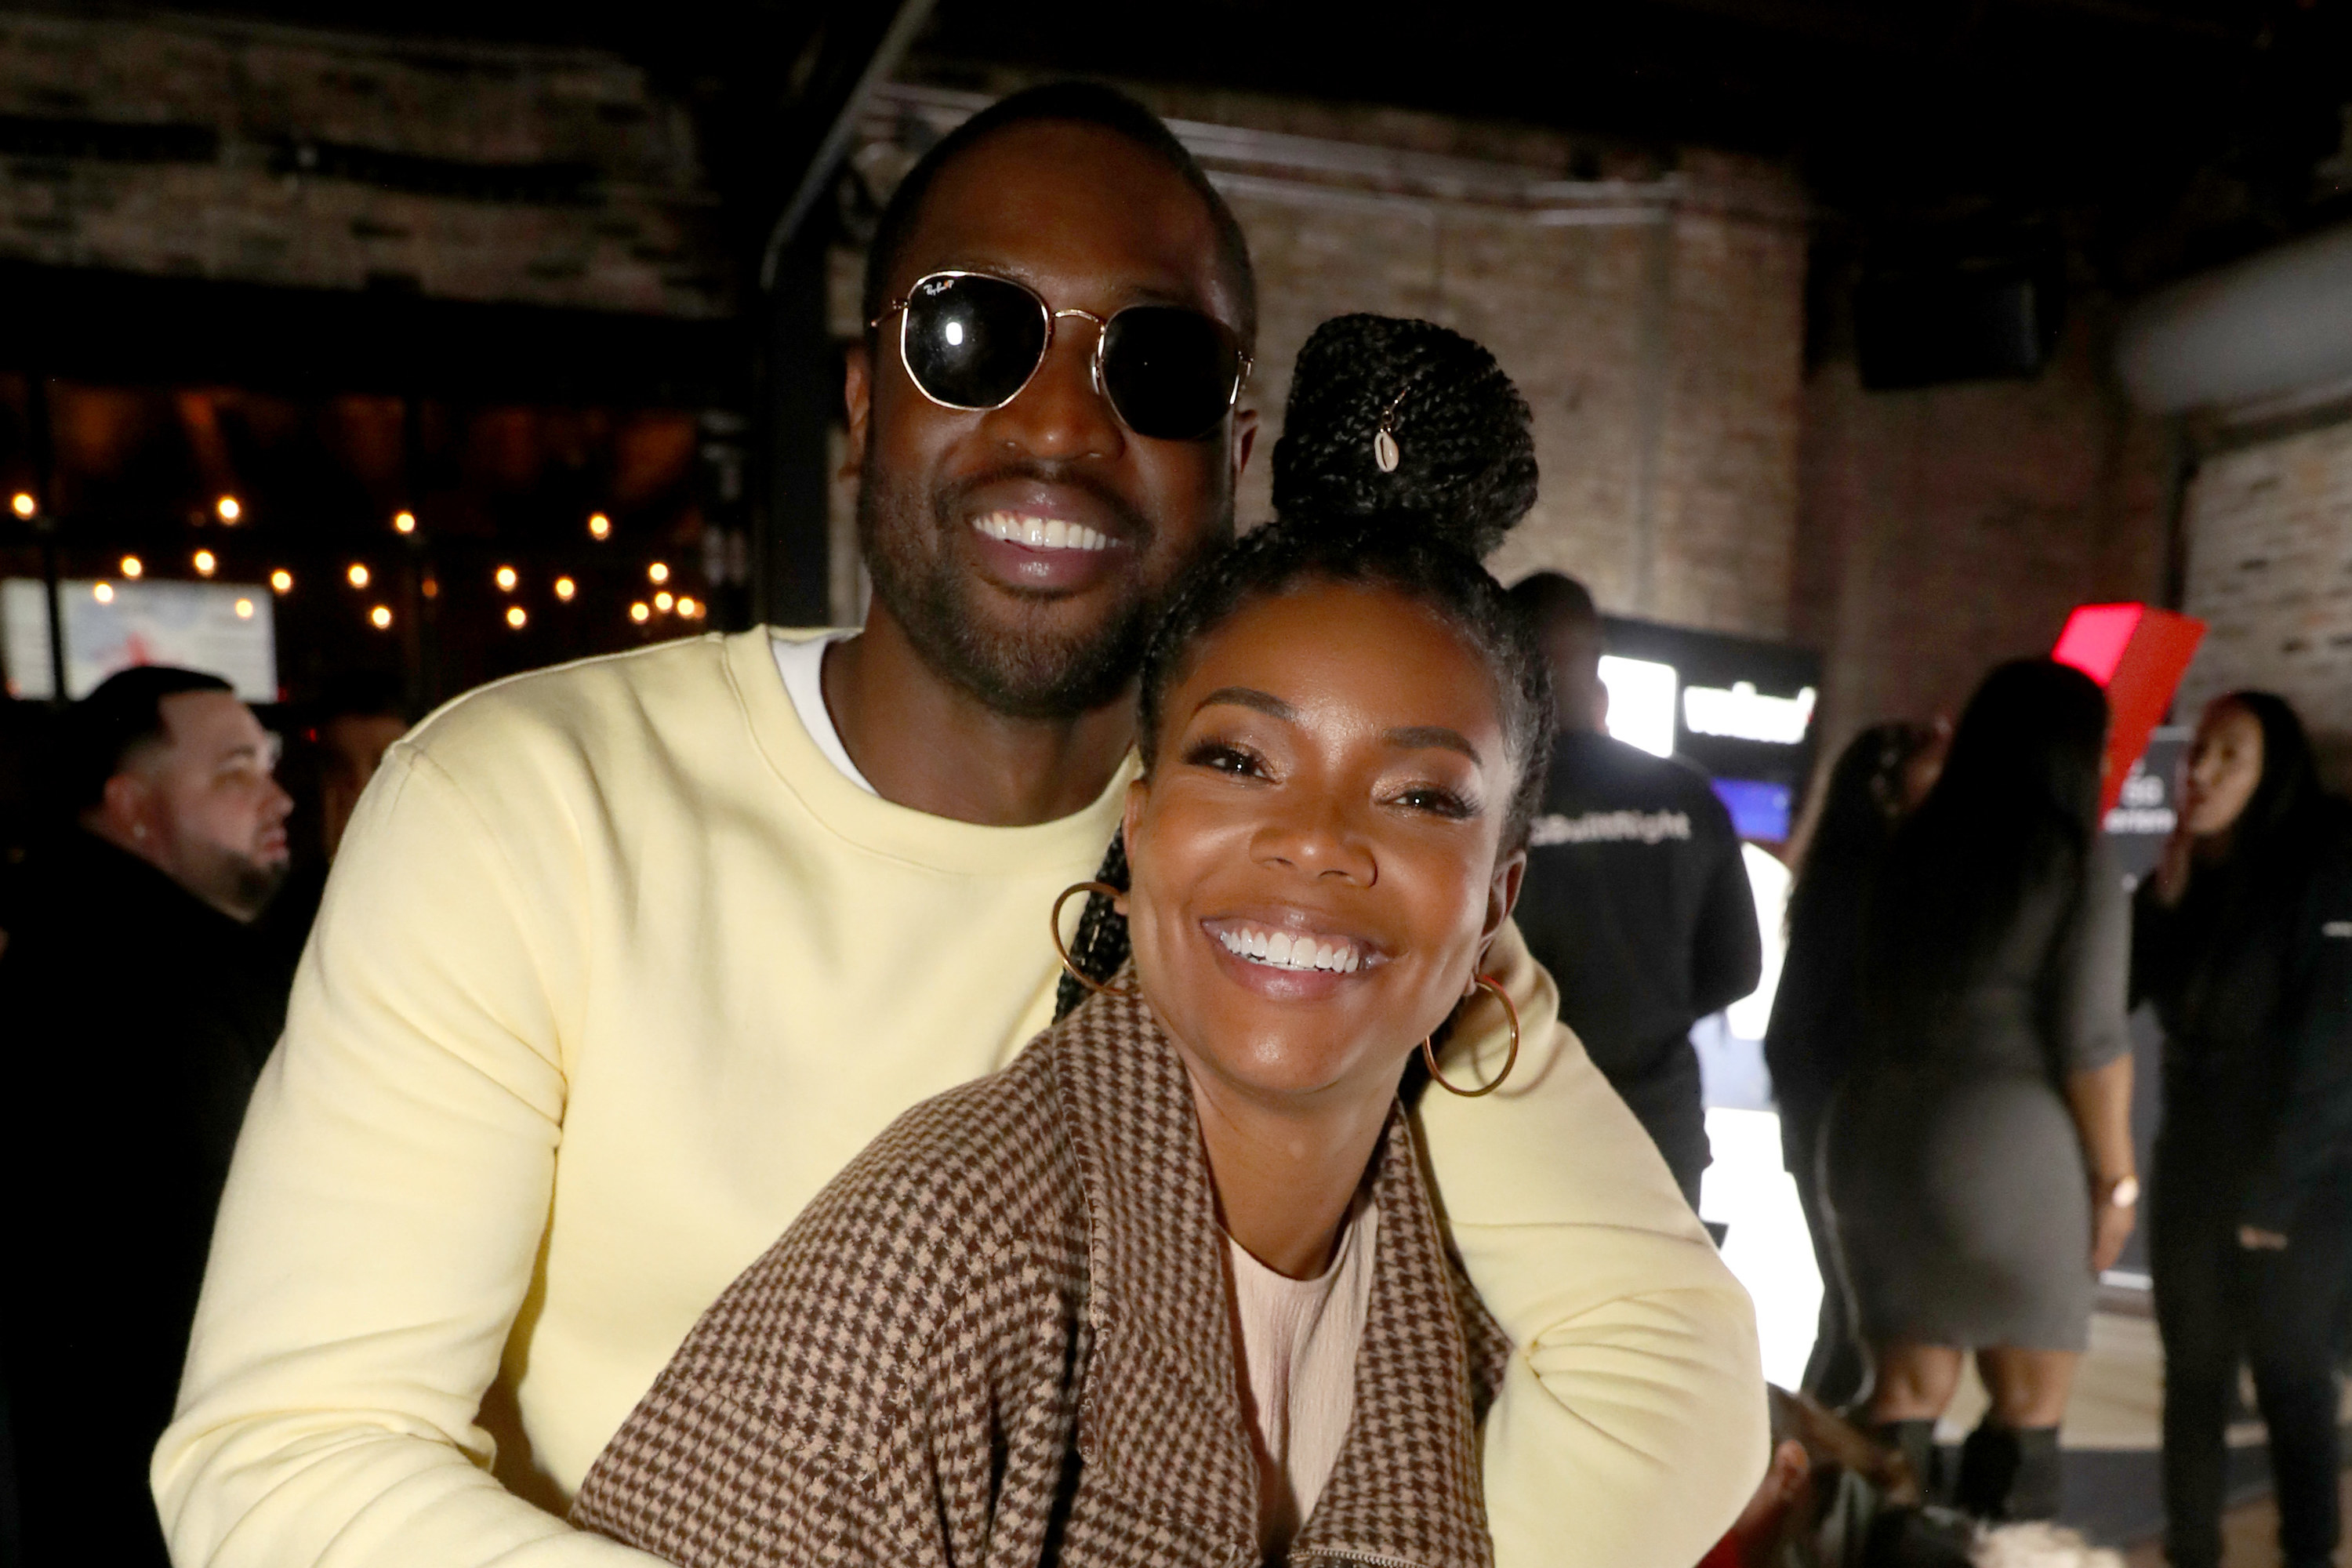 Dwyane Wade and Gabrielle Union attend Stance Spades At NBA All-Star 2020 at City Hall on February 15, 2020 in Chicago, Illinois